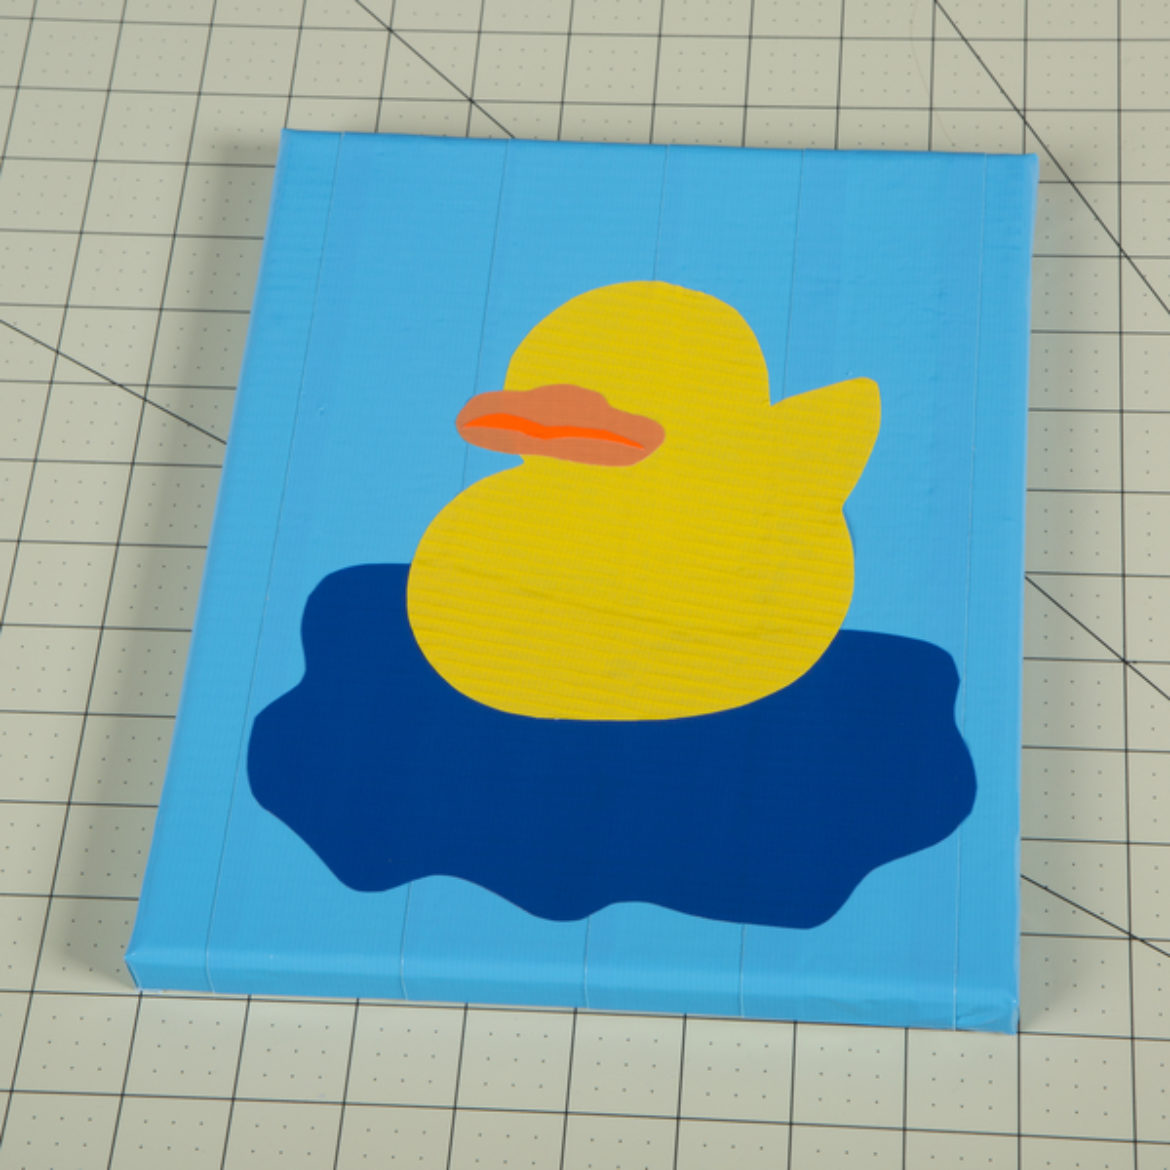 Beak shape form previous step traced and cut out of a piece of Duck Tape. Place on the Duck outline